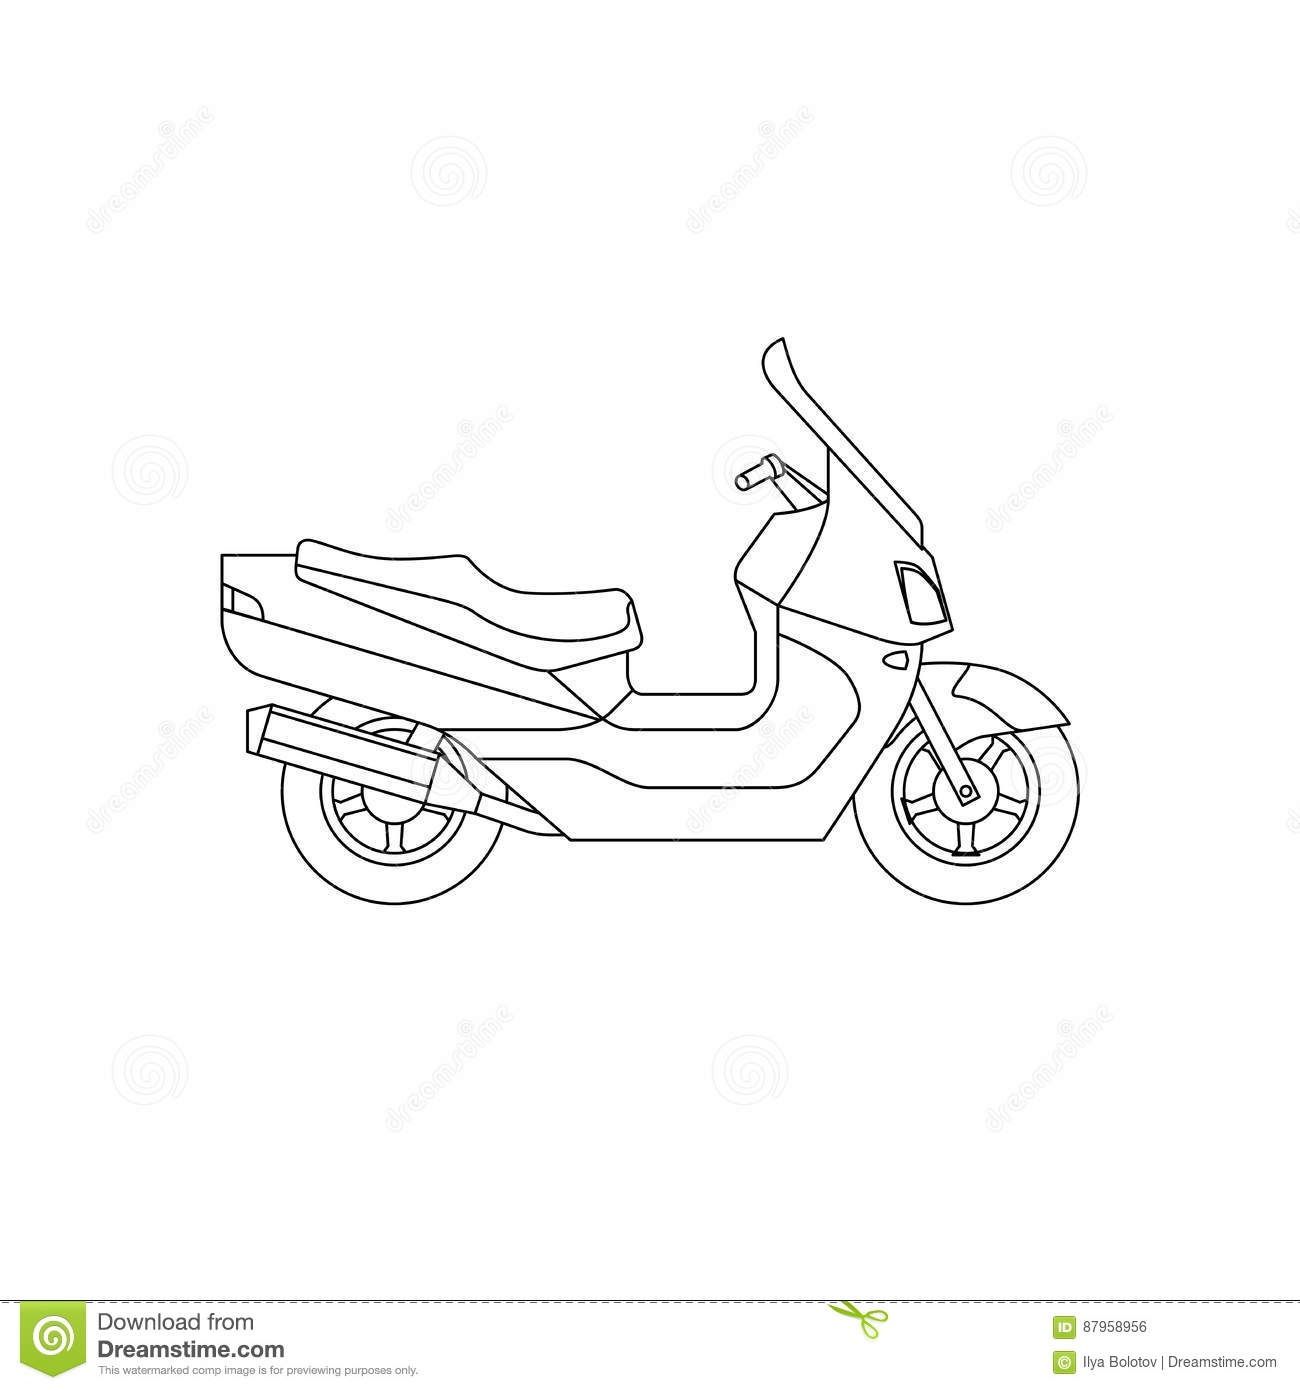 Maxi Scooter line drawing stock vector. Illustration of